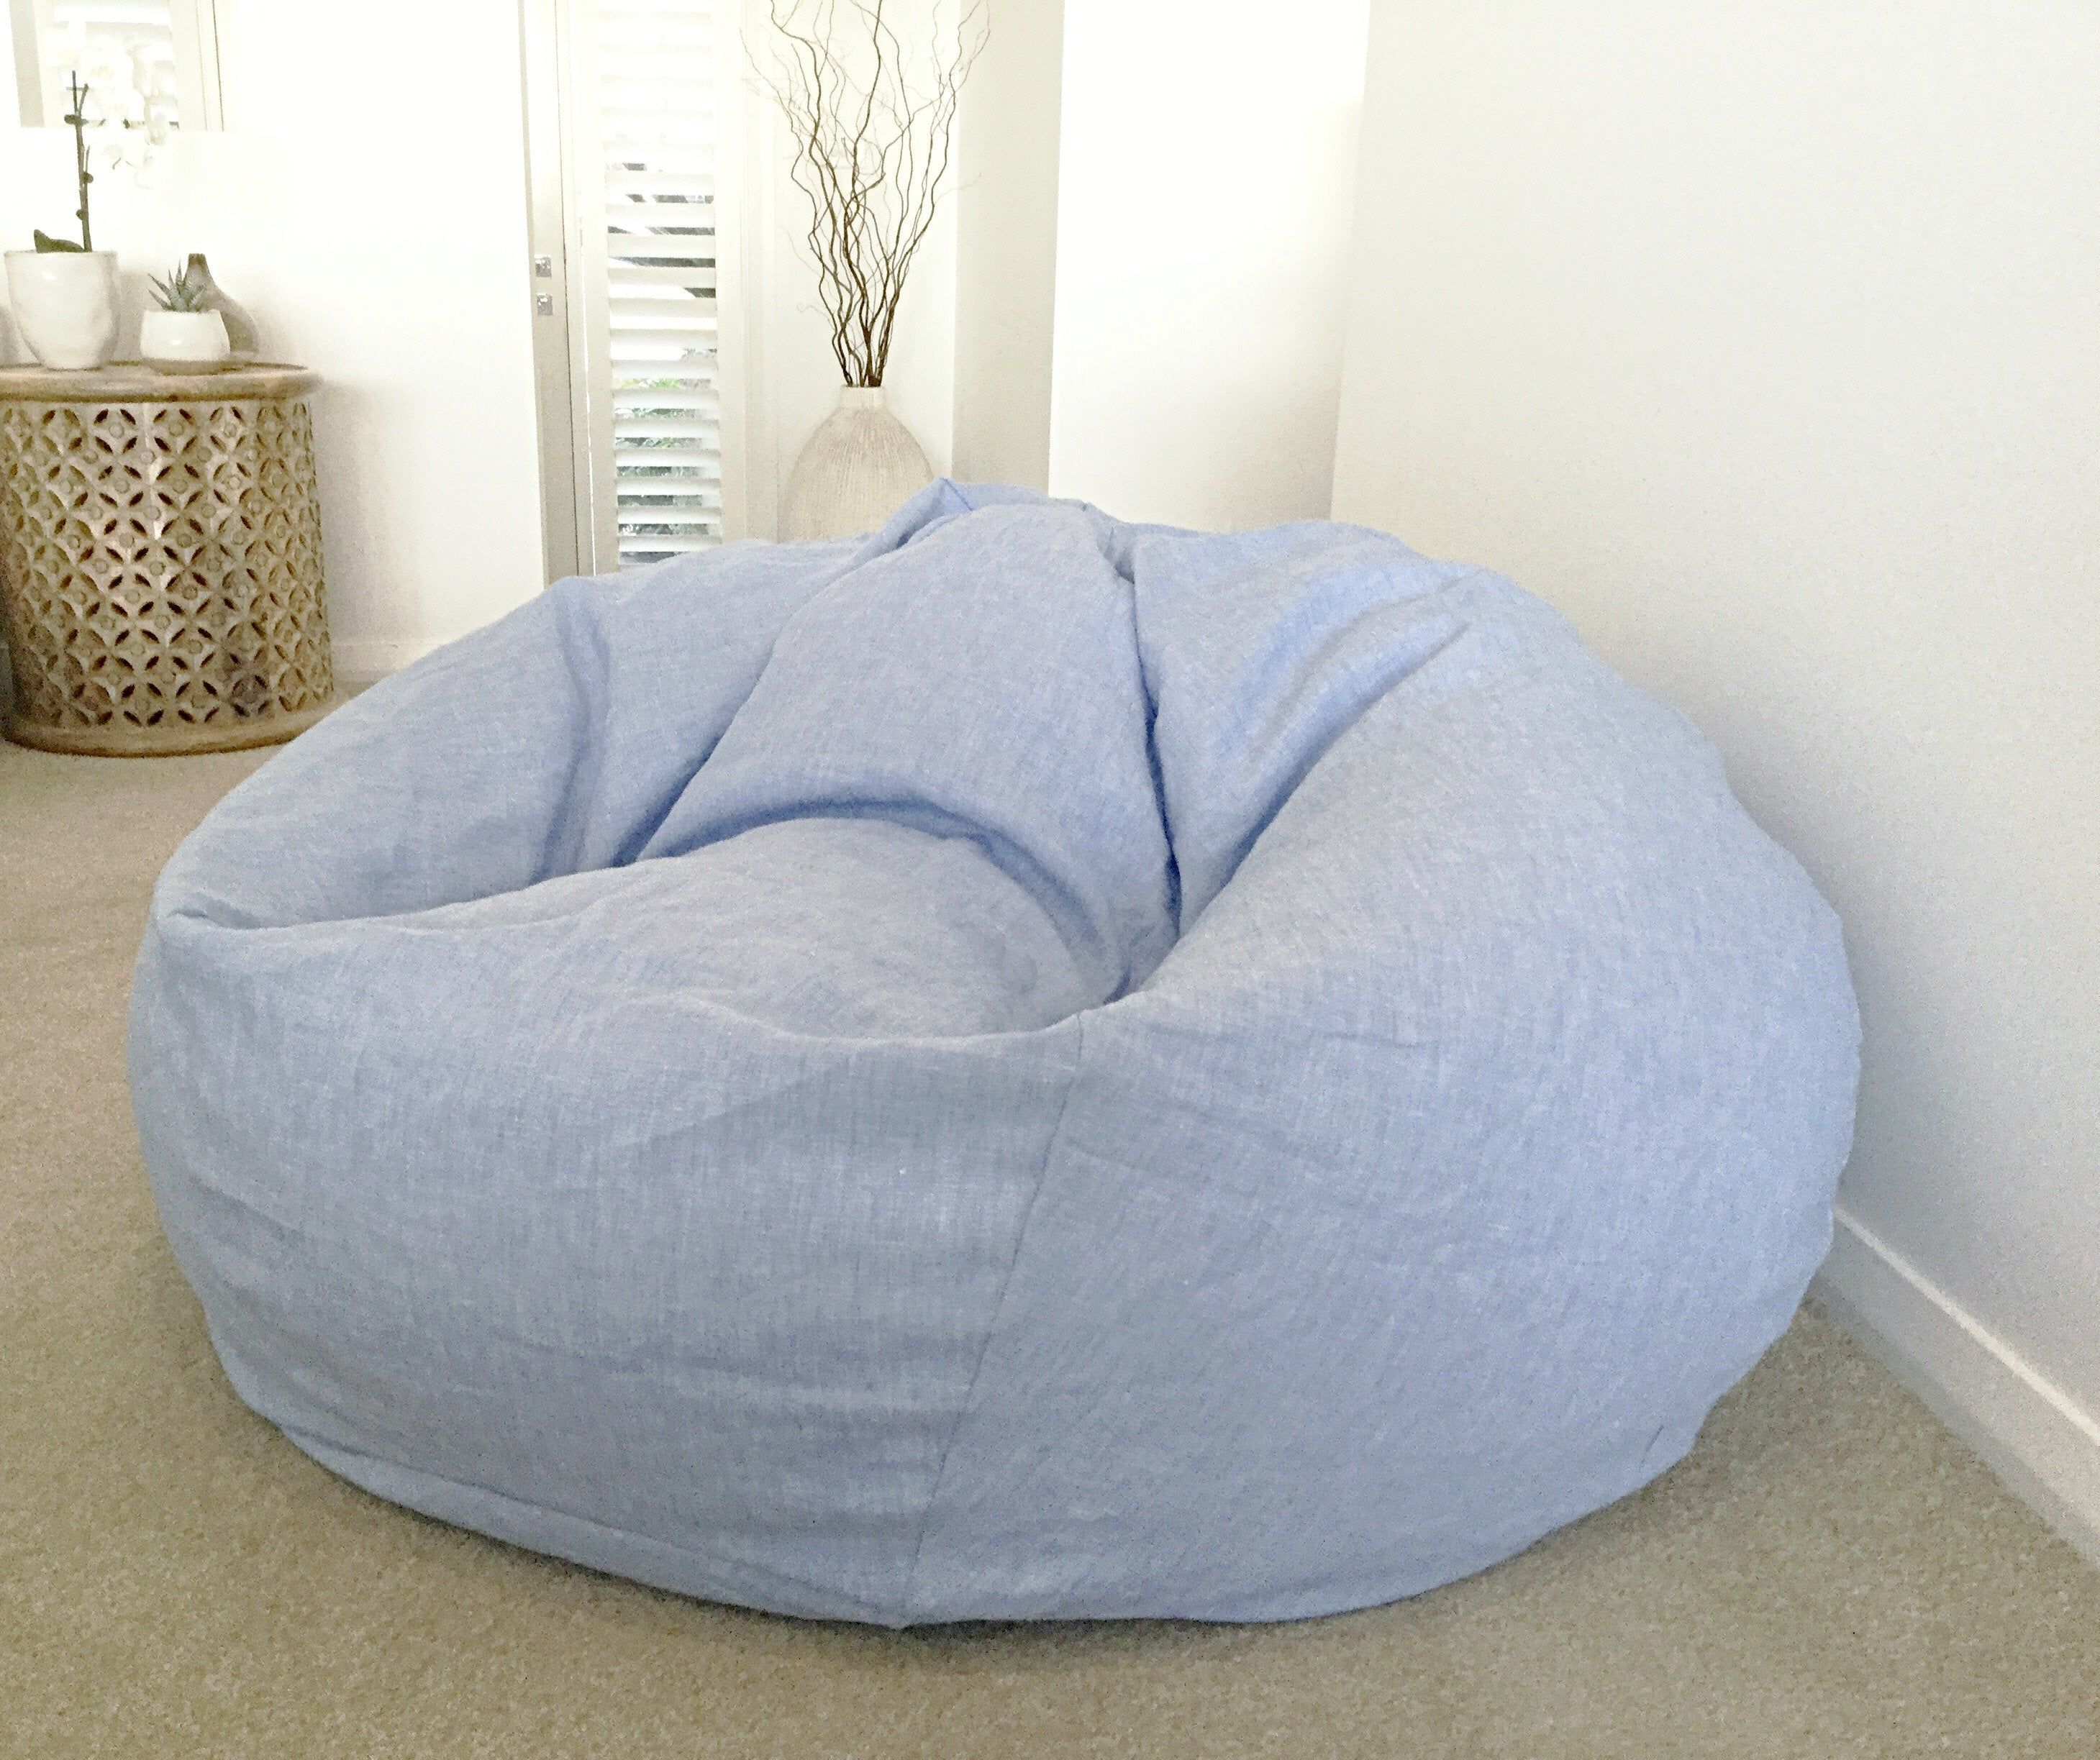 Bean Bag Linen Bean Bag Cover Only Chambray Linen Seafoam Etsy In 2020 Black And White Cushions Portable Shade White Cushion Covers